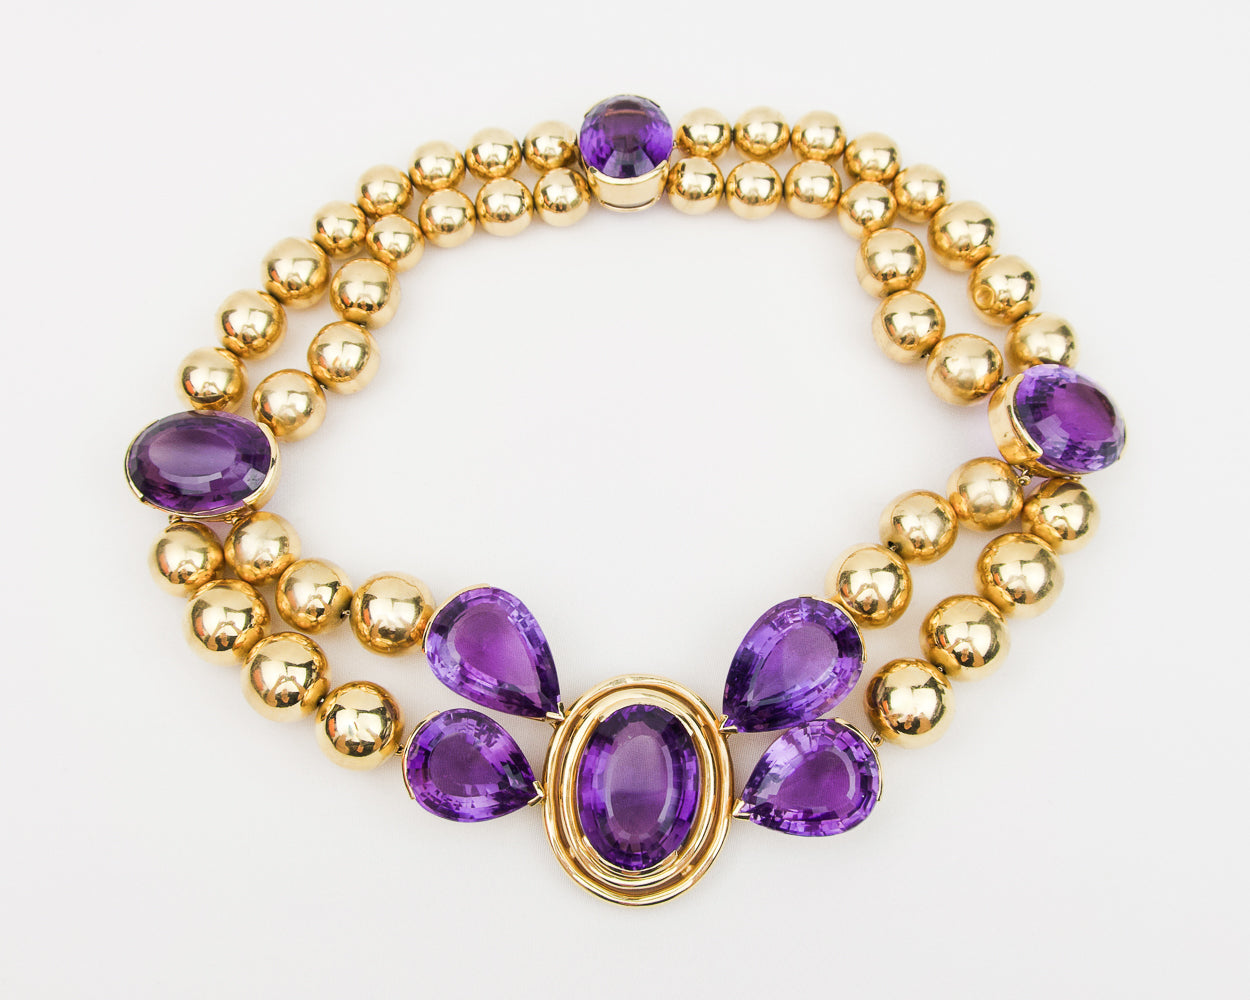 Vintage Beaded Necklace with Amethysts